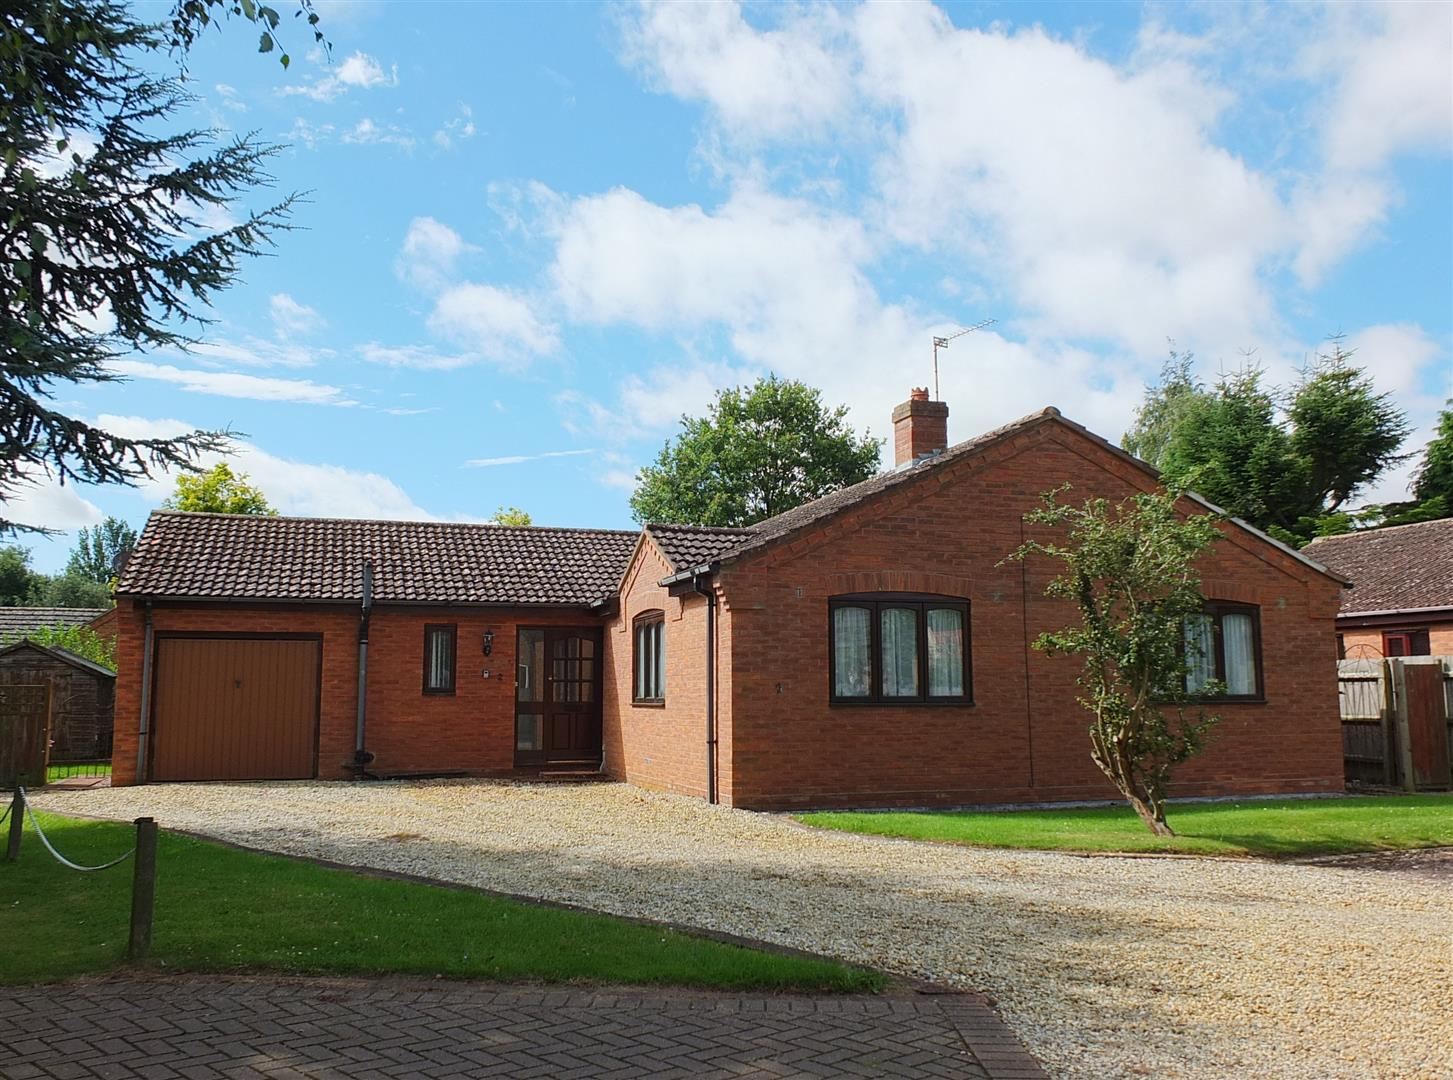 4 bed detached bungalow for sale in Sutton Bridge Spalding, PE12 9QN  - Property Image 1